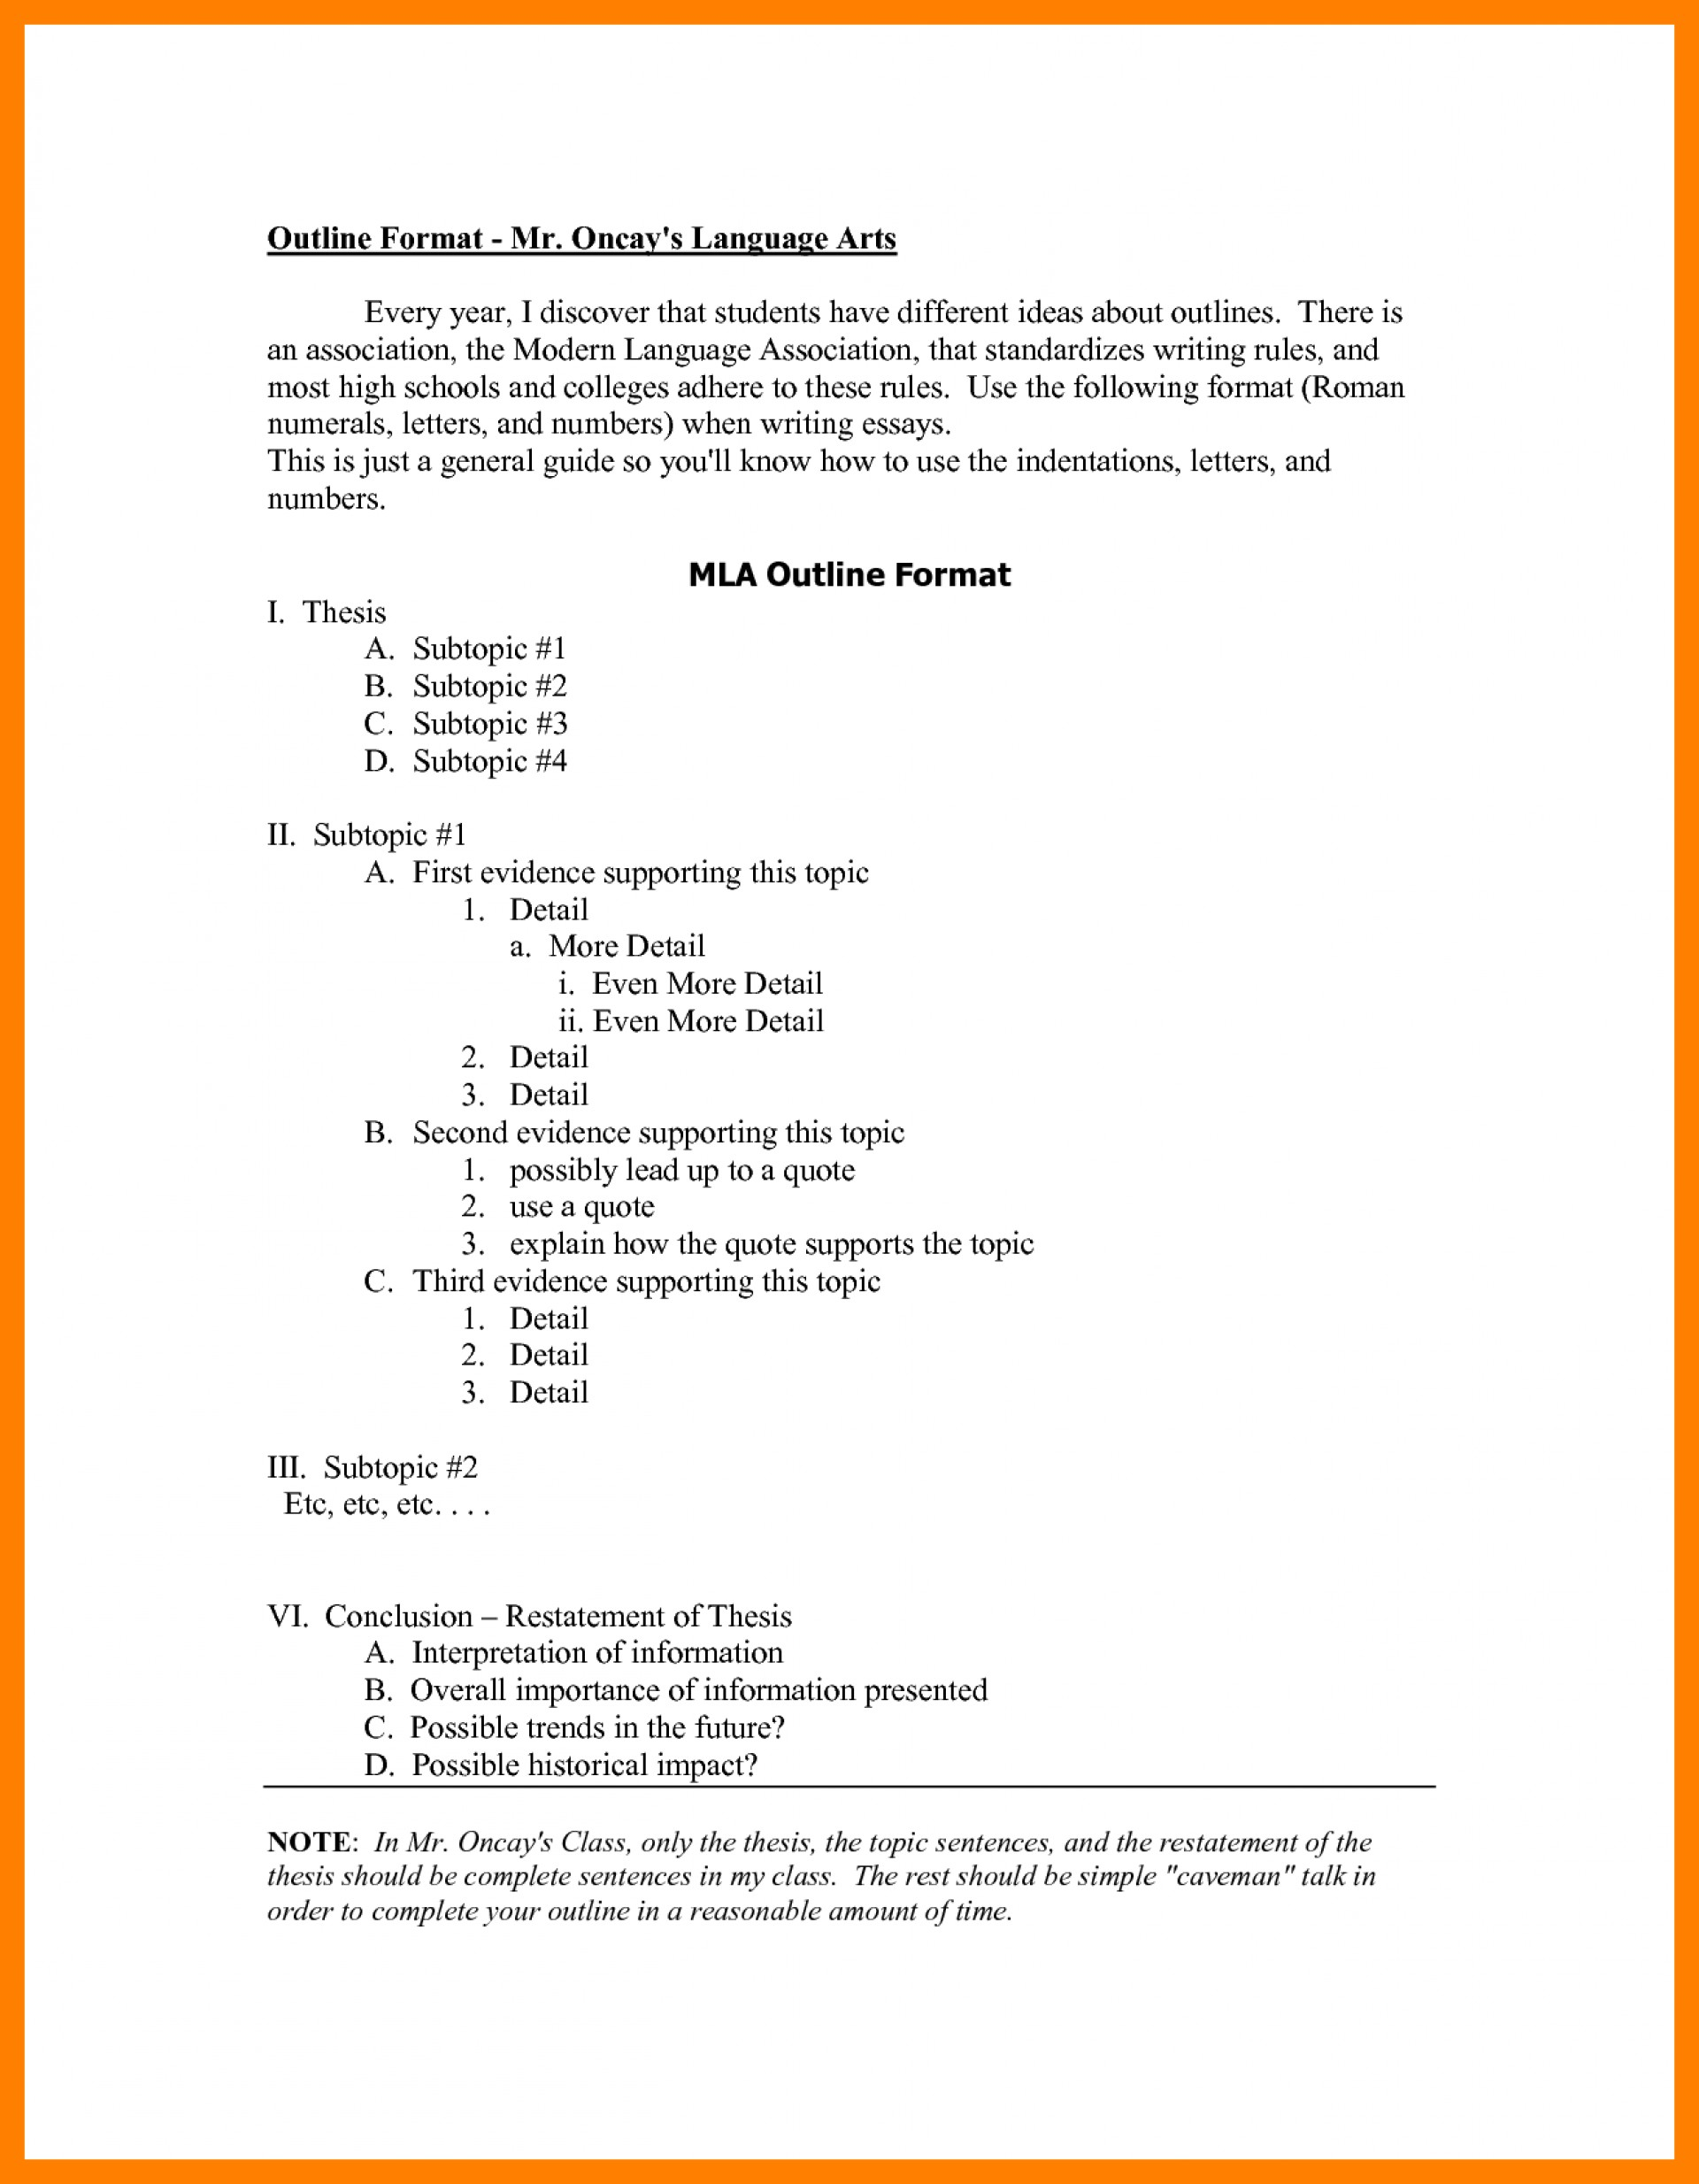 014 High School Research Papers Outline Format Mla Paper Example Of Examples Impressive Rubric Assignment Sheet Topics Pdf 1920